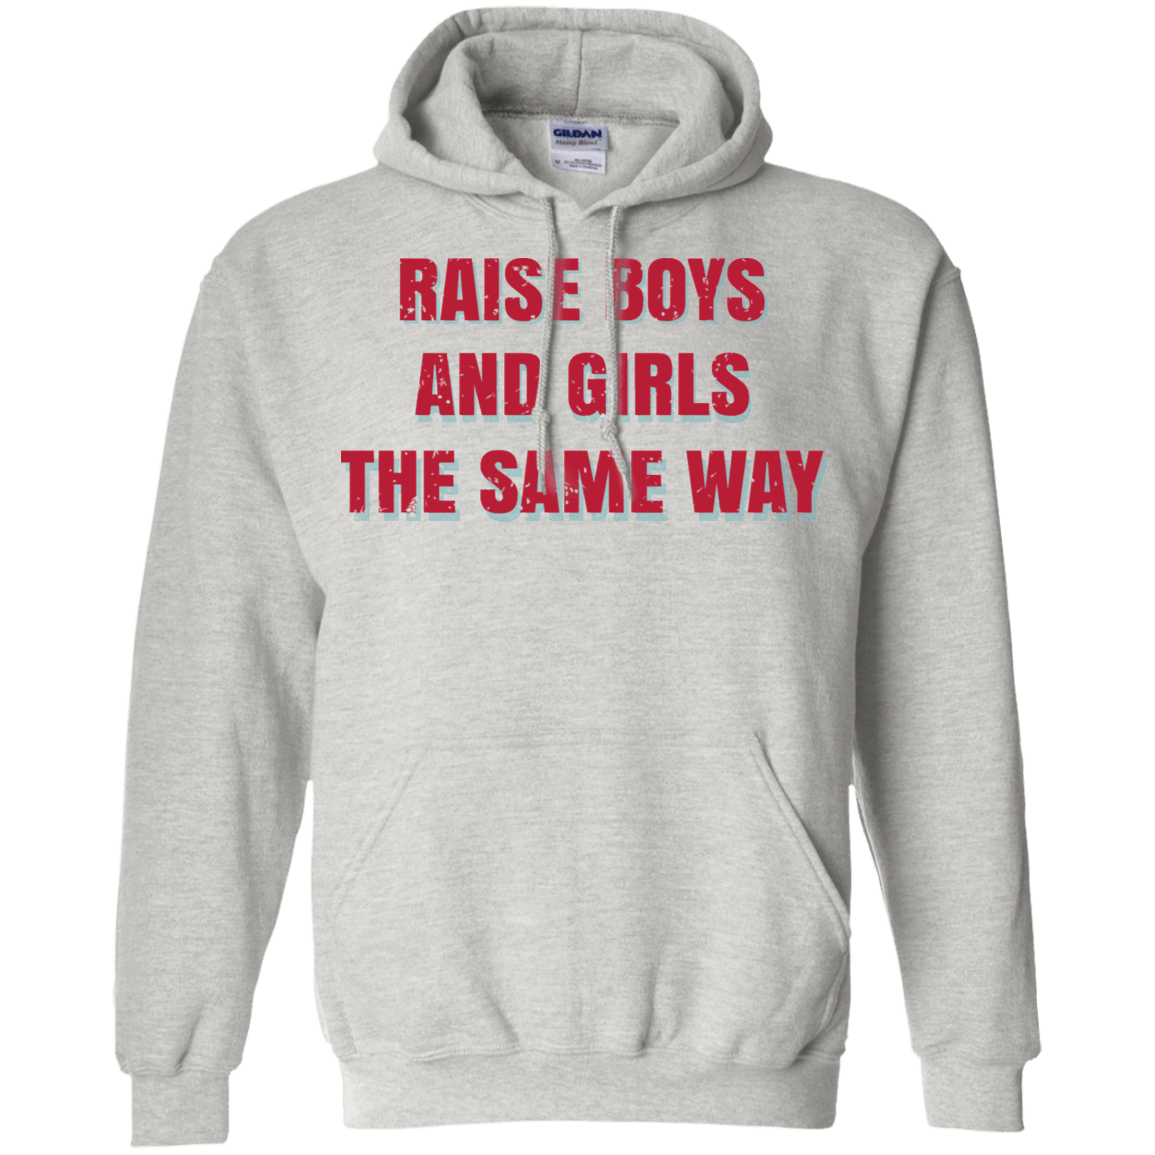 Raise Boys And Girls The Same Way 541-4748-72088652-23071 - Tee Ript